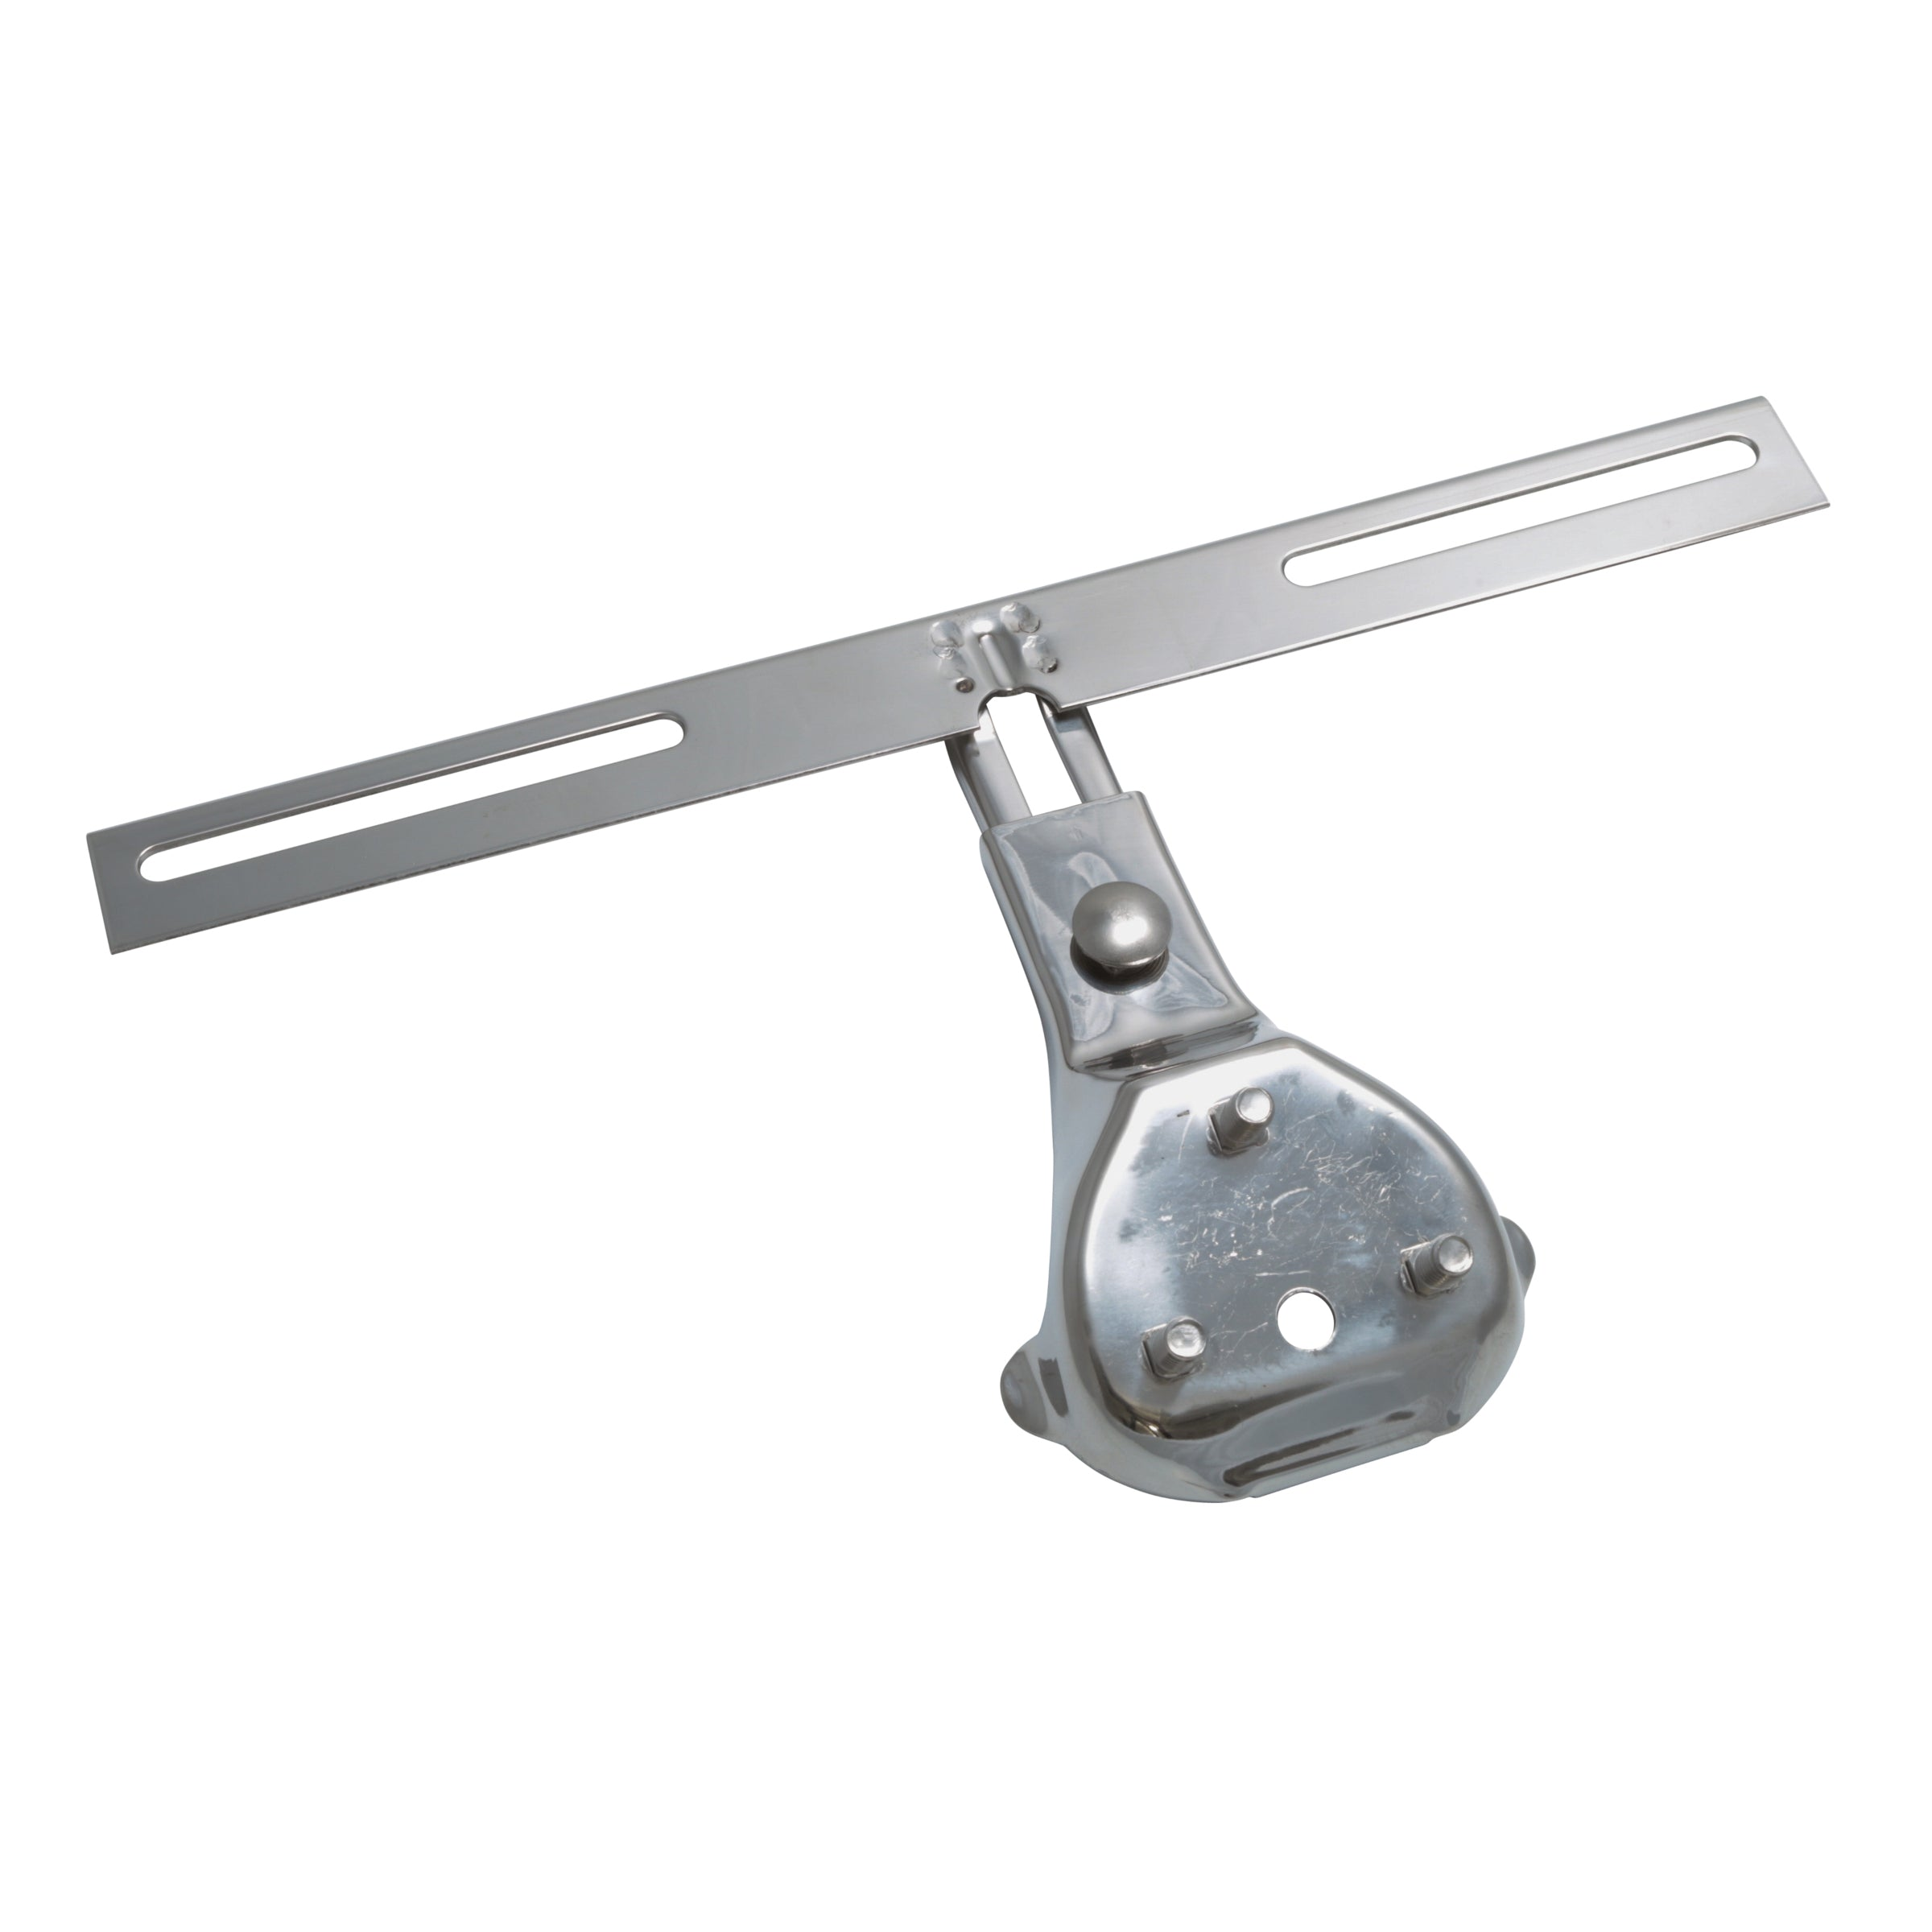 License Plate Bracket (Rear - Stainless Steel) • 1938-48 Ford Passenger